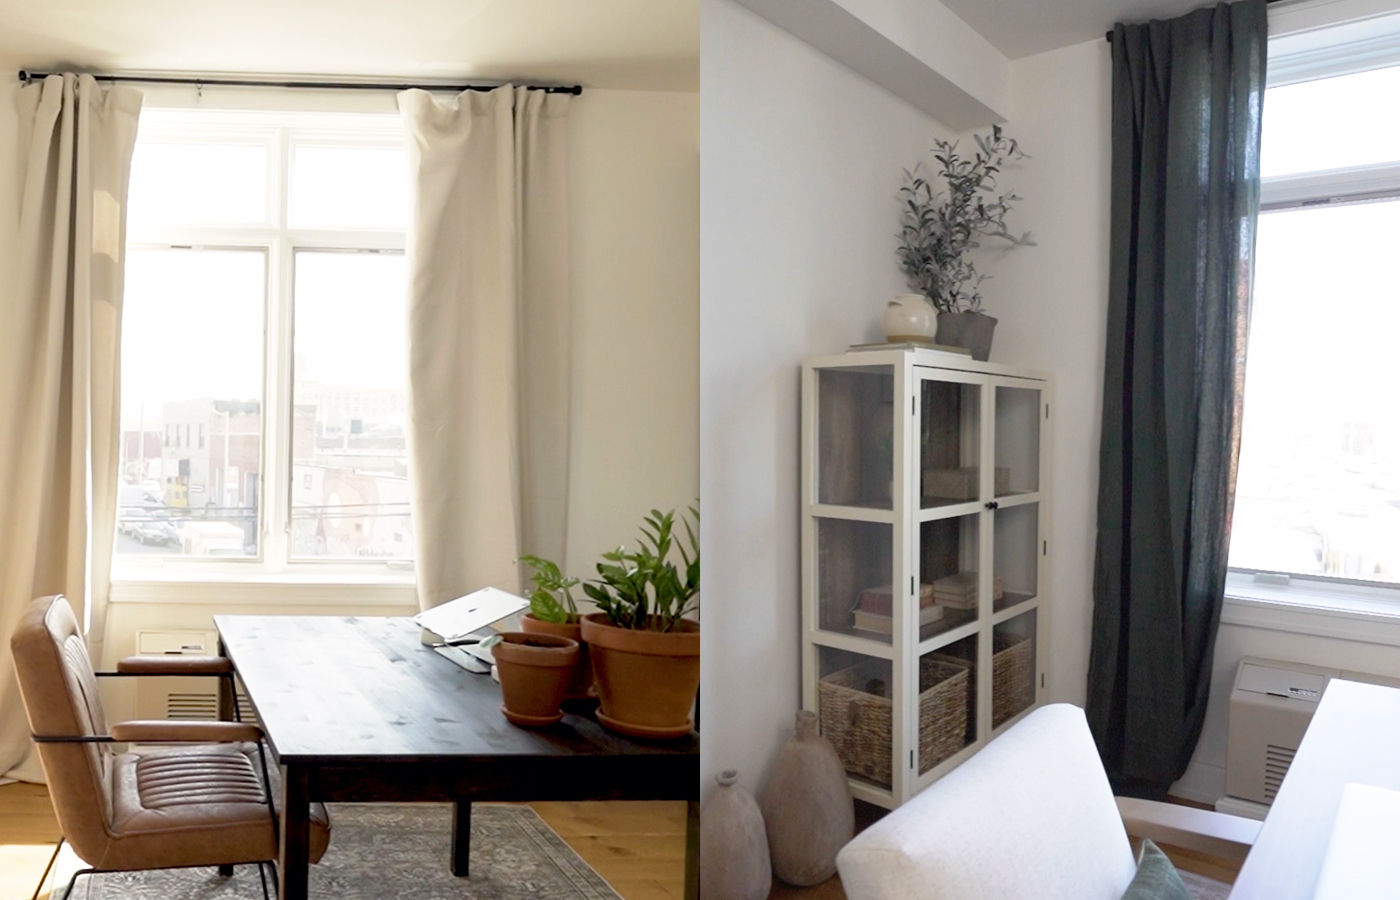 Before and After: This Brooklyn home office gets a California-inspired makeover with just $1,000